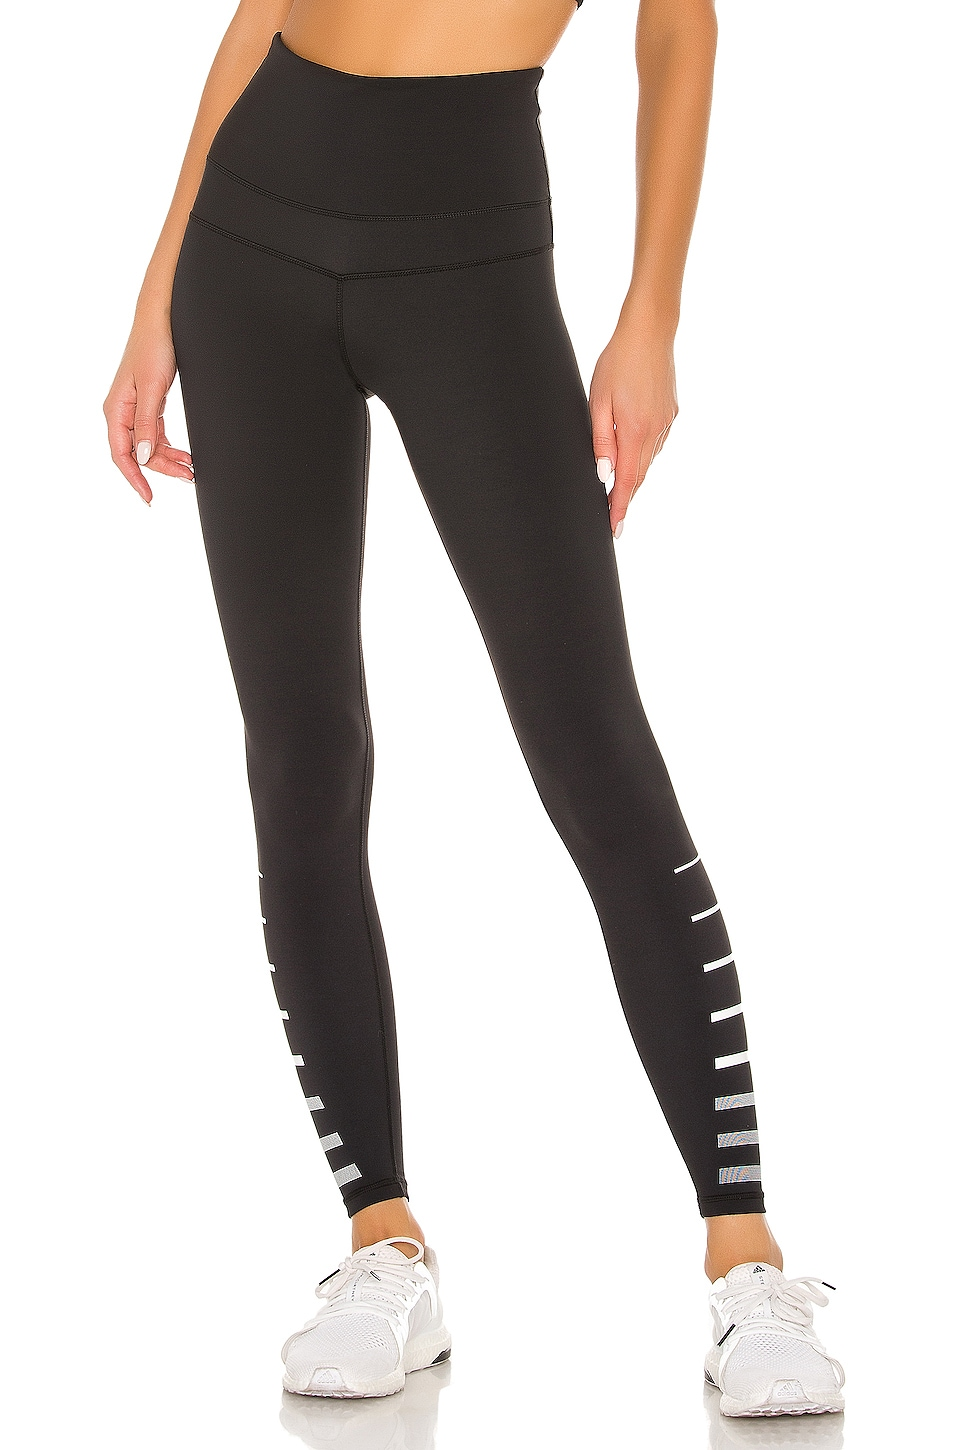 lilybod Molly Legging in Tarmac Black